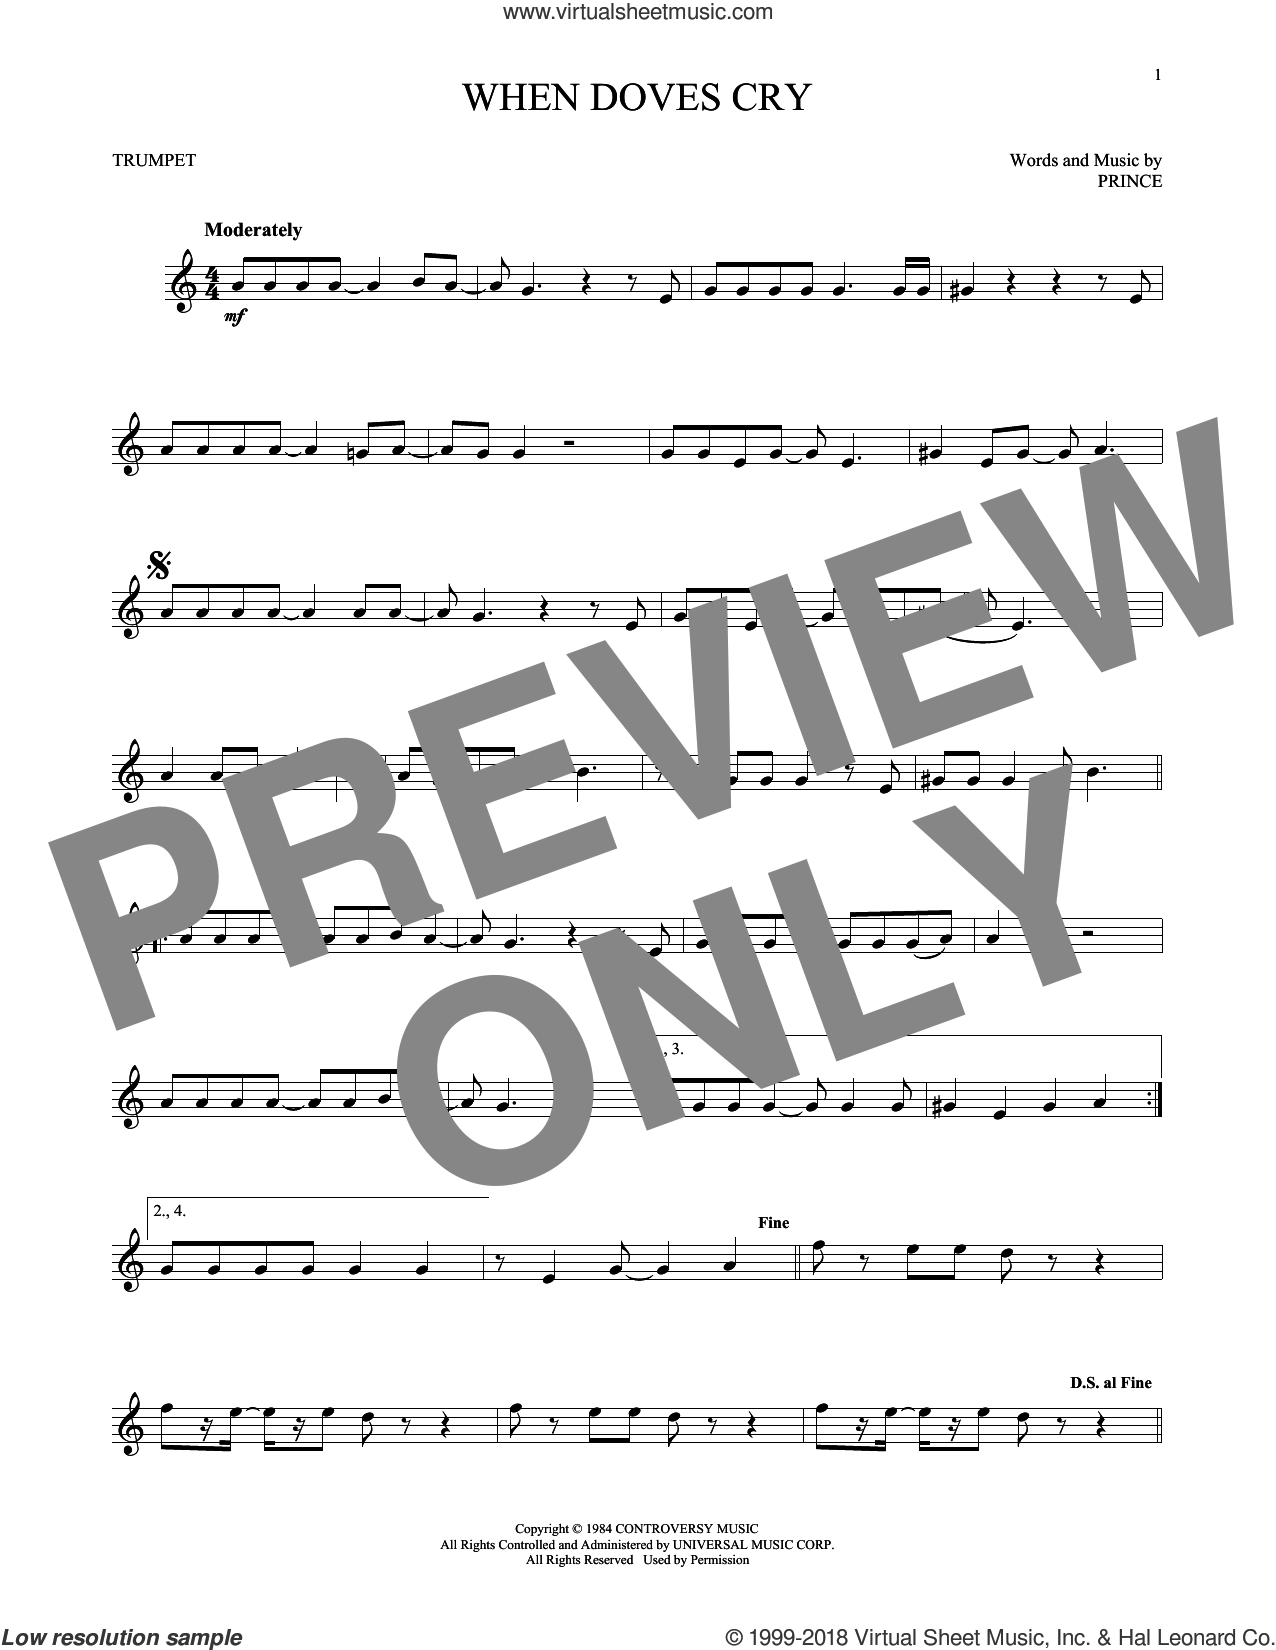 When Doves Cry sheet music for trumpet solo by Prince, intermediate skill level